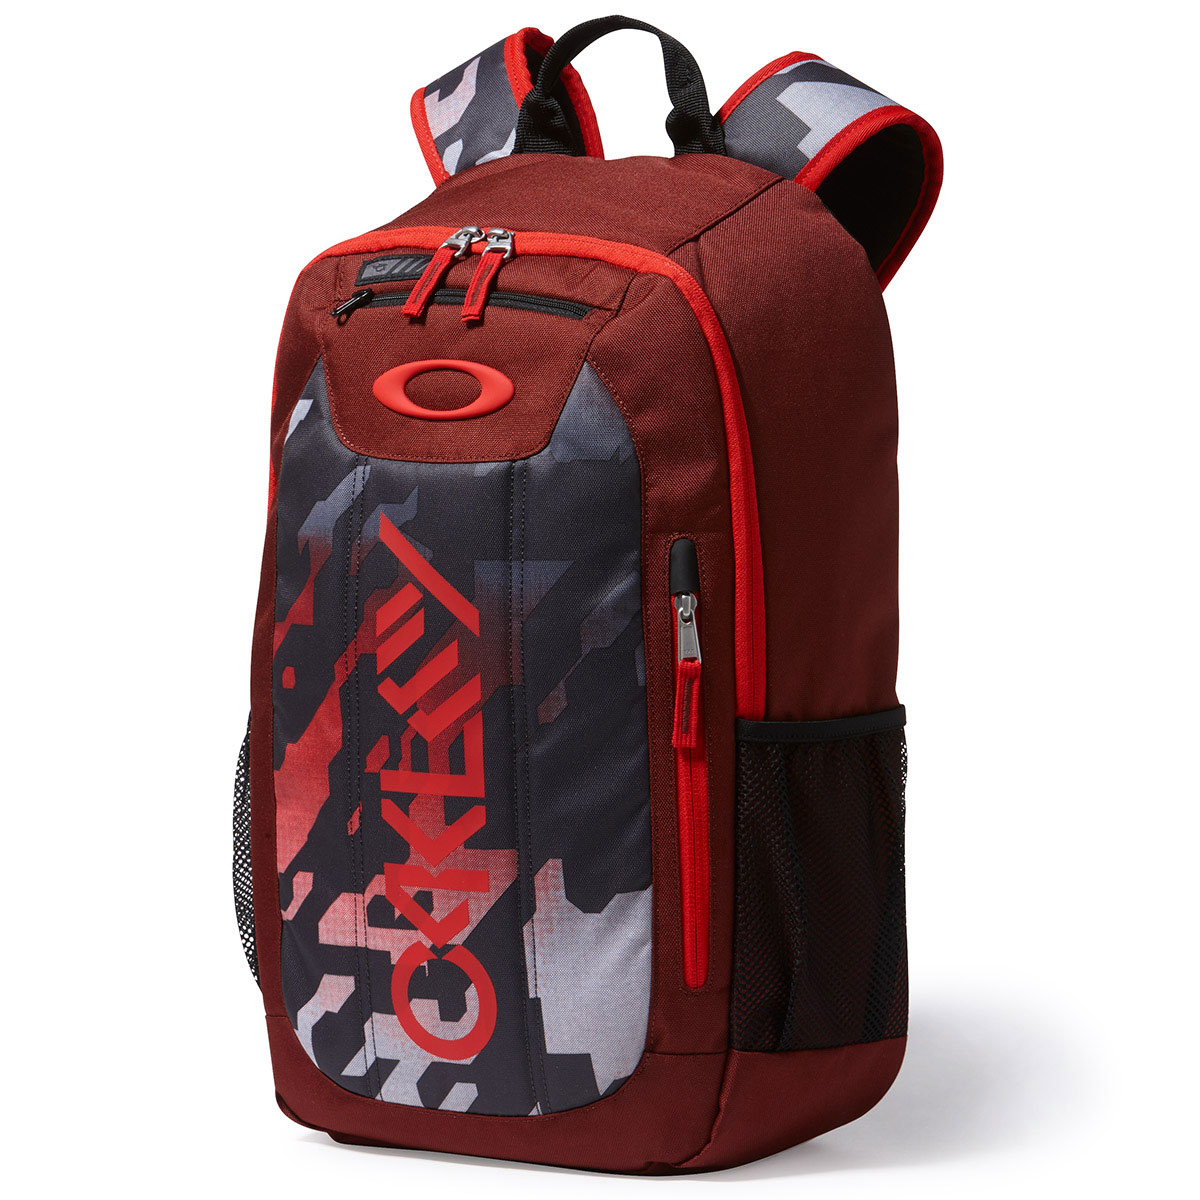 Shop all sports backpacks and gym bags at DICK'S Sporting Goods. Expert Advice. Find the Right School Bookbag for Your Gear. Shop school backpacks, bookbags and the entire collection of gym bags and workout bags at DICK'S Sporting Goods. Featured Categories. Cool Backpacks & Bookbags;.